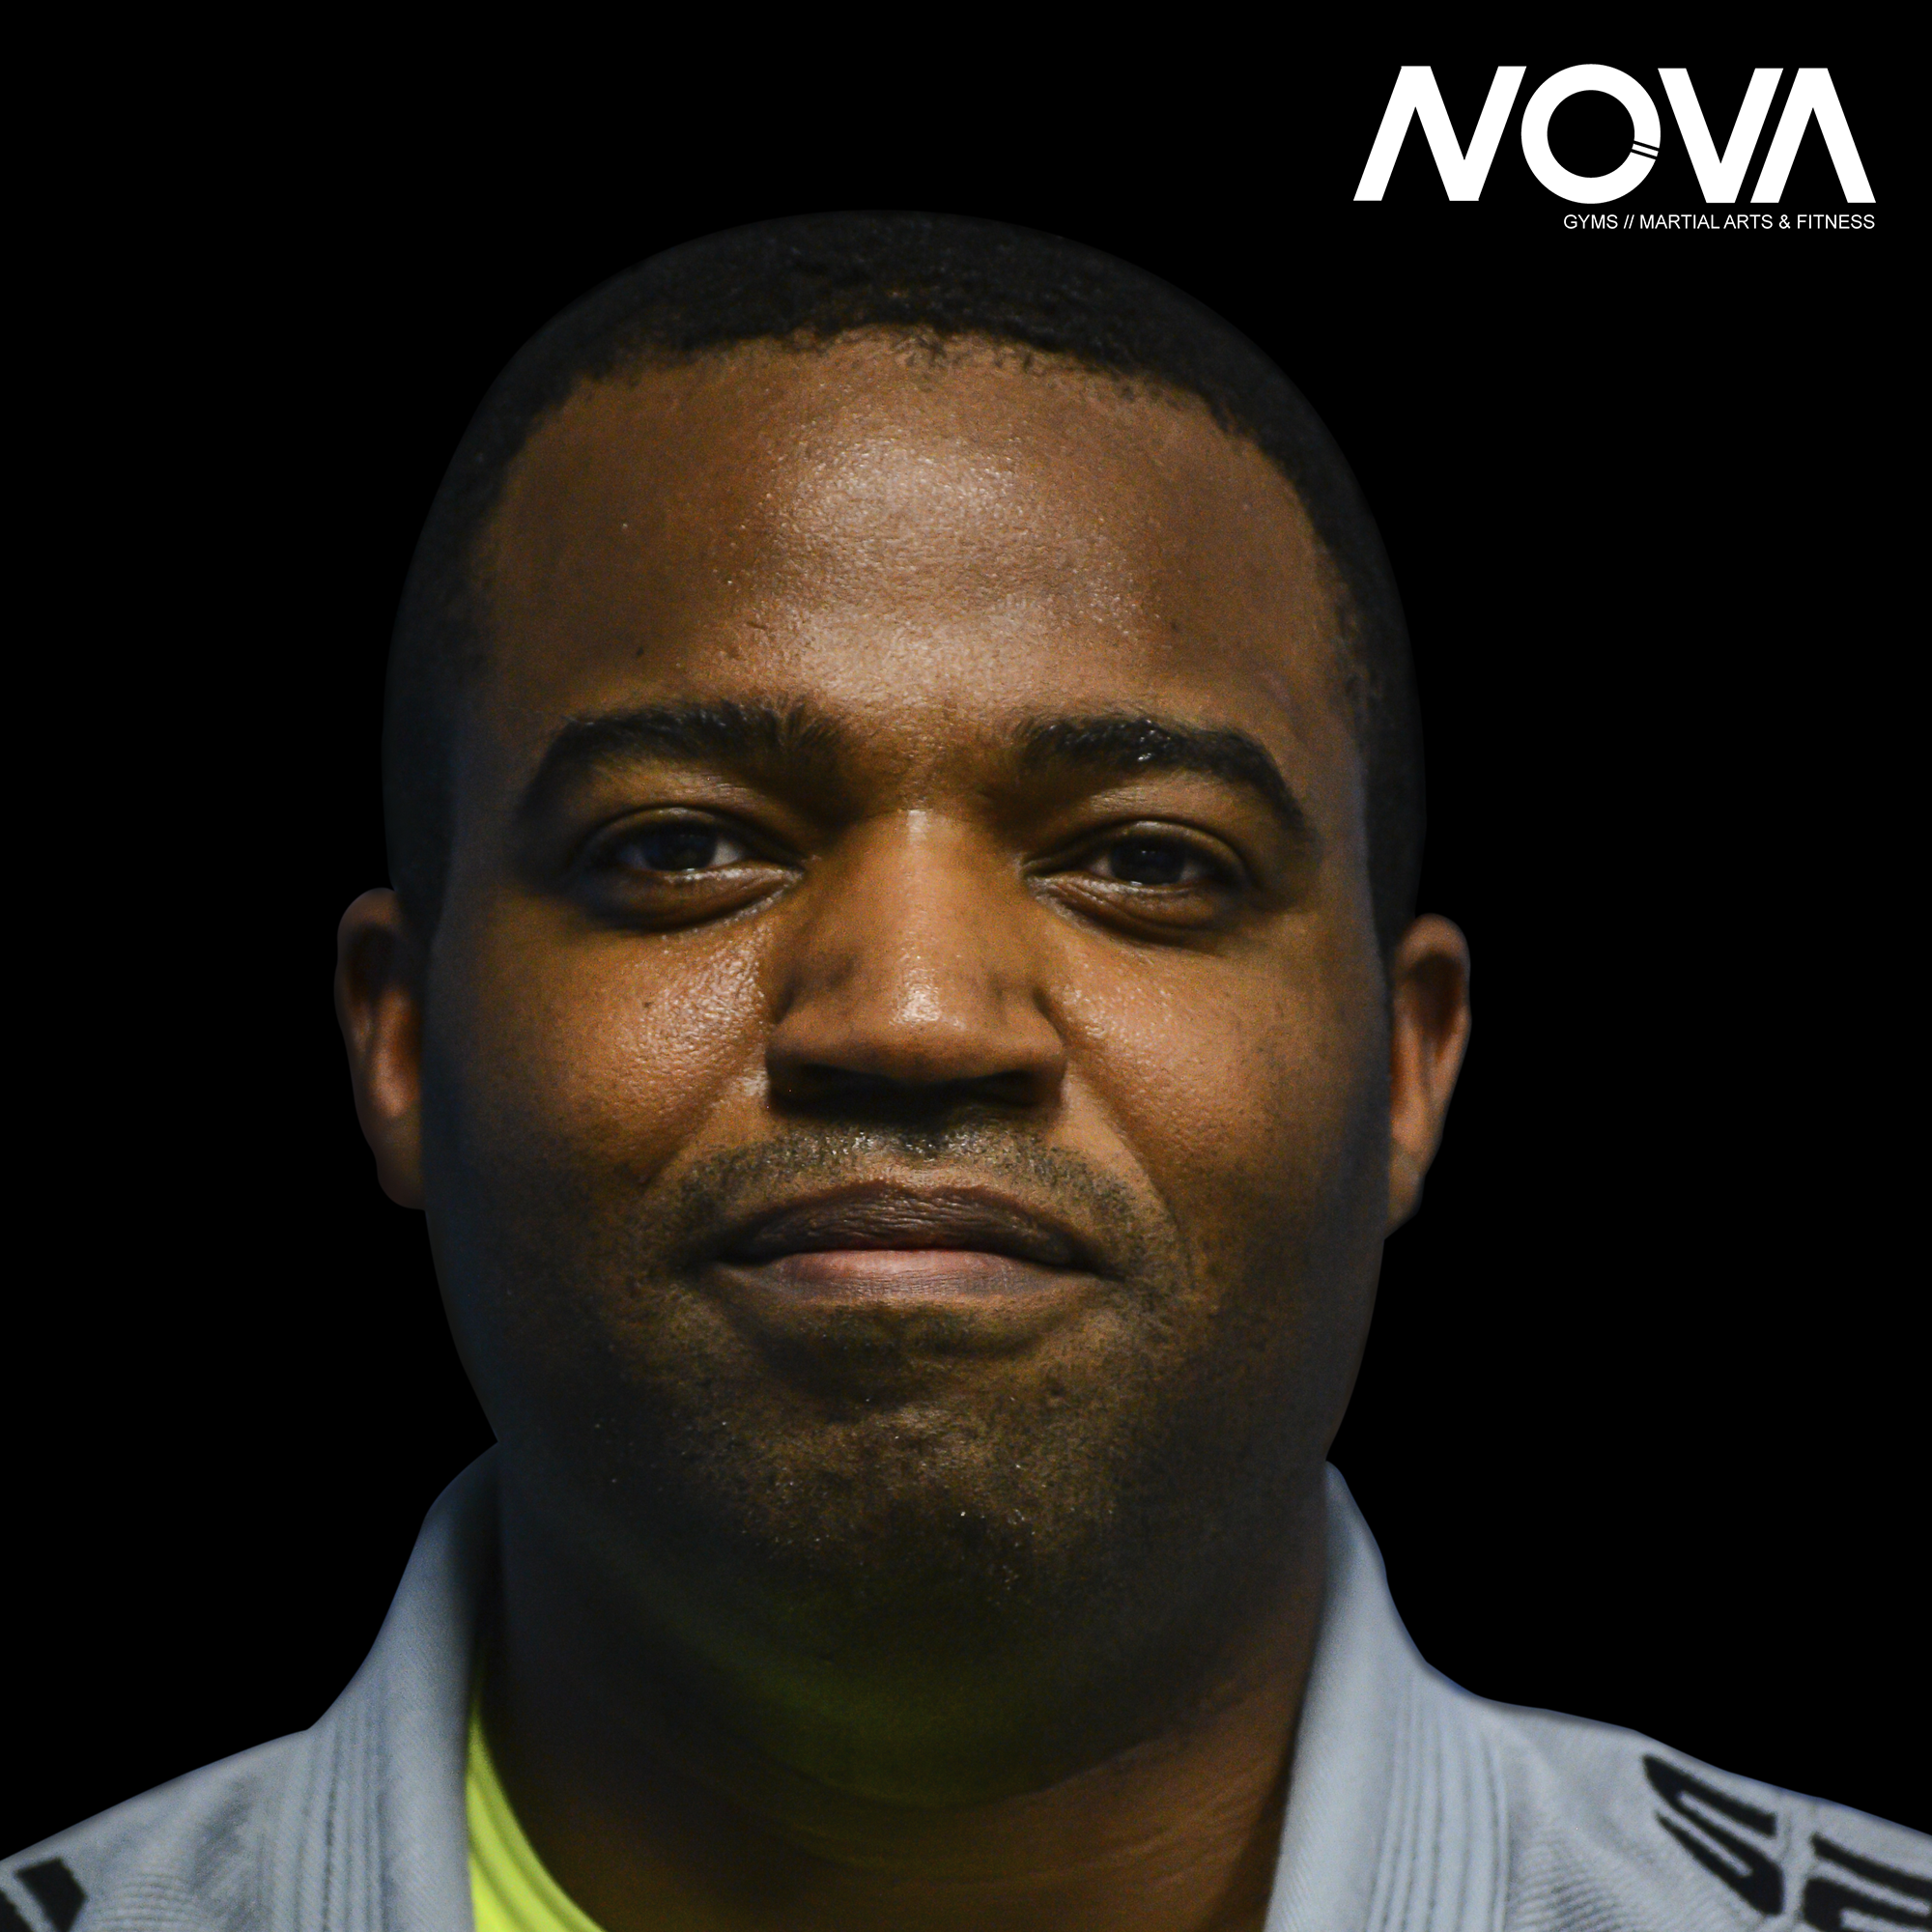 Calvin Allen    - Associate Jiu Jitsu Coach   Calvin has been helping others learn jiu jitsu since joining Nova and making jiu jitsu a part of his lifestyle. Calvin currently studies with Marc Laimon in Oak Creek during the week and coaches passes on the knowledge to the other students at Nova as an associate coach.   When Calvin is not teaching jiu jitsu at Nova he is traveling the world as an Evangelist representing his church.